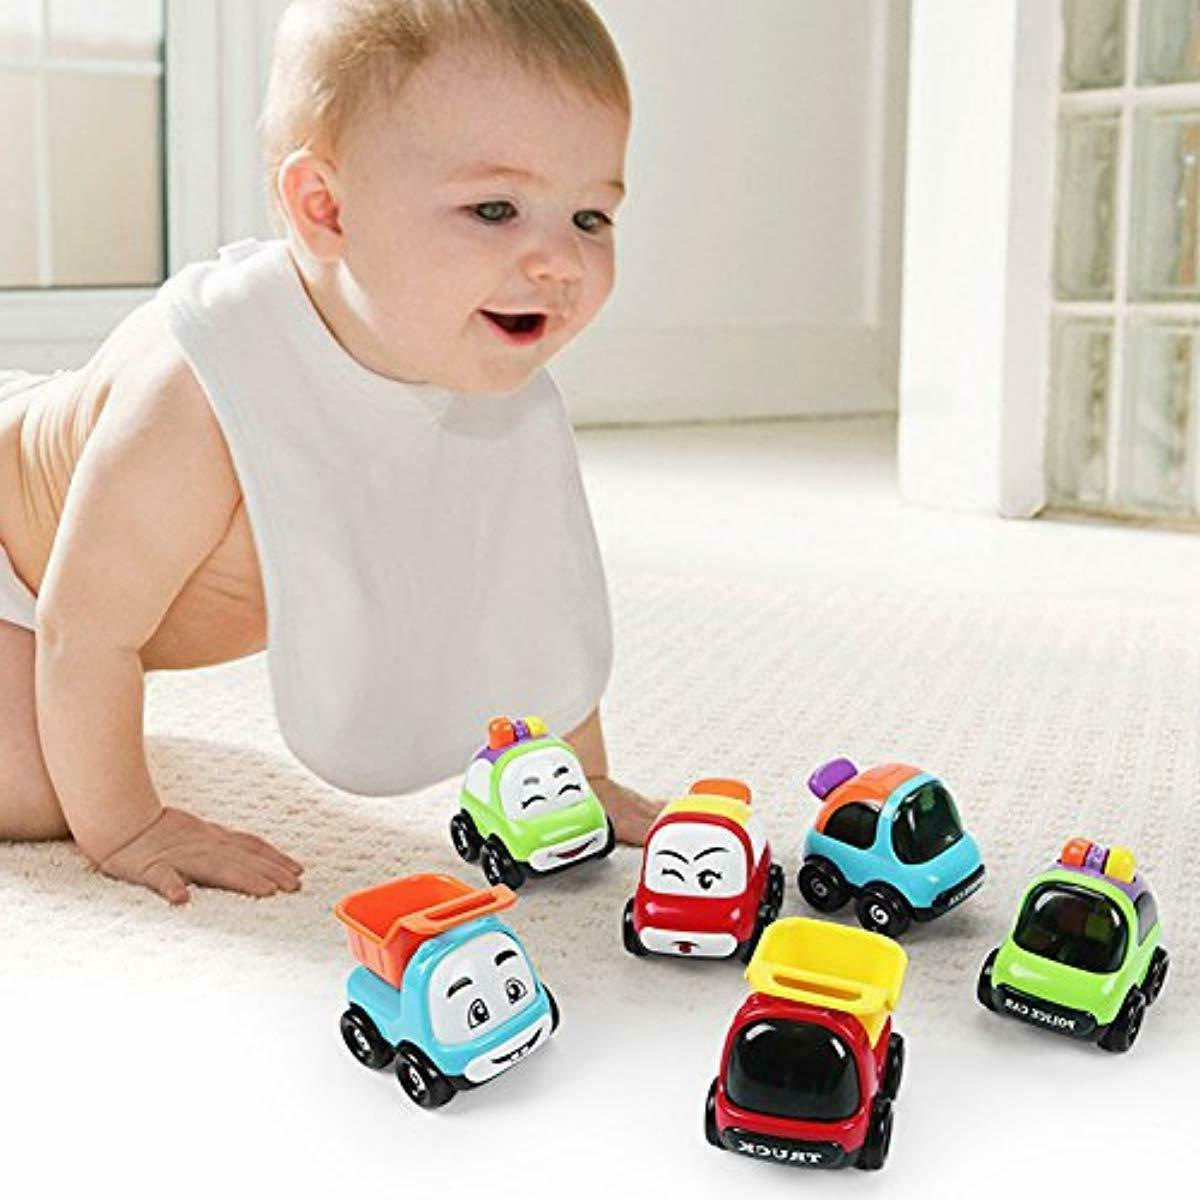 Little Toy Car Toys Trucks Play Set Toddlers